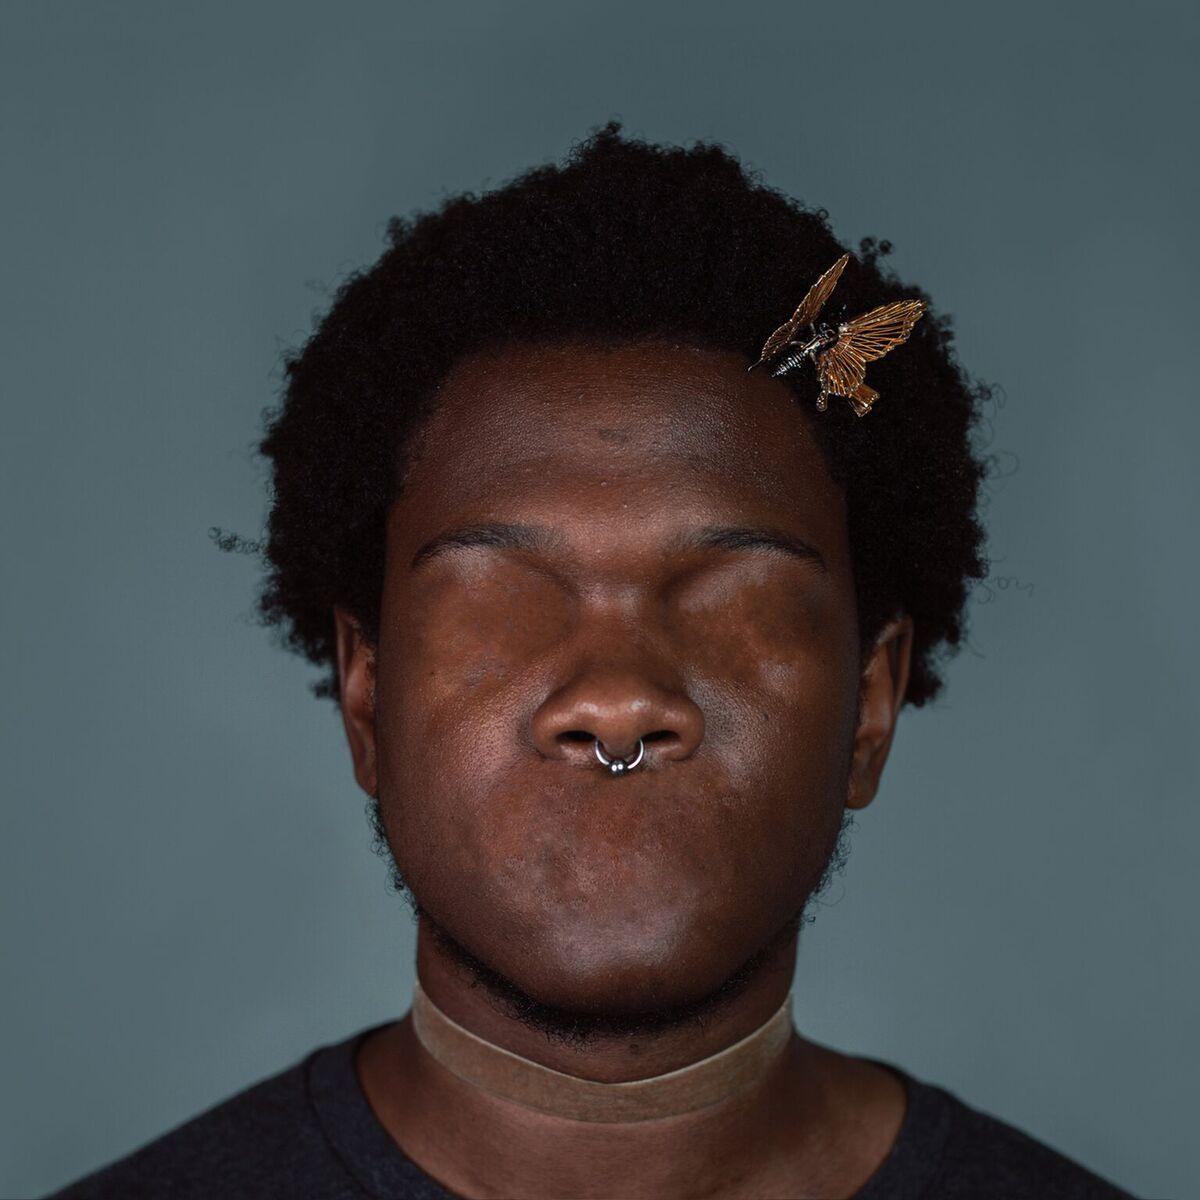 Shamir new album Revelations